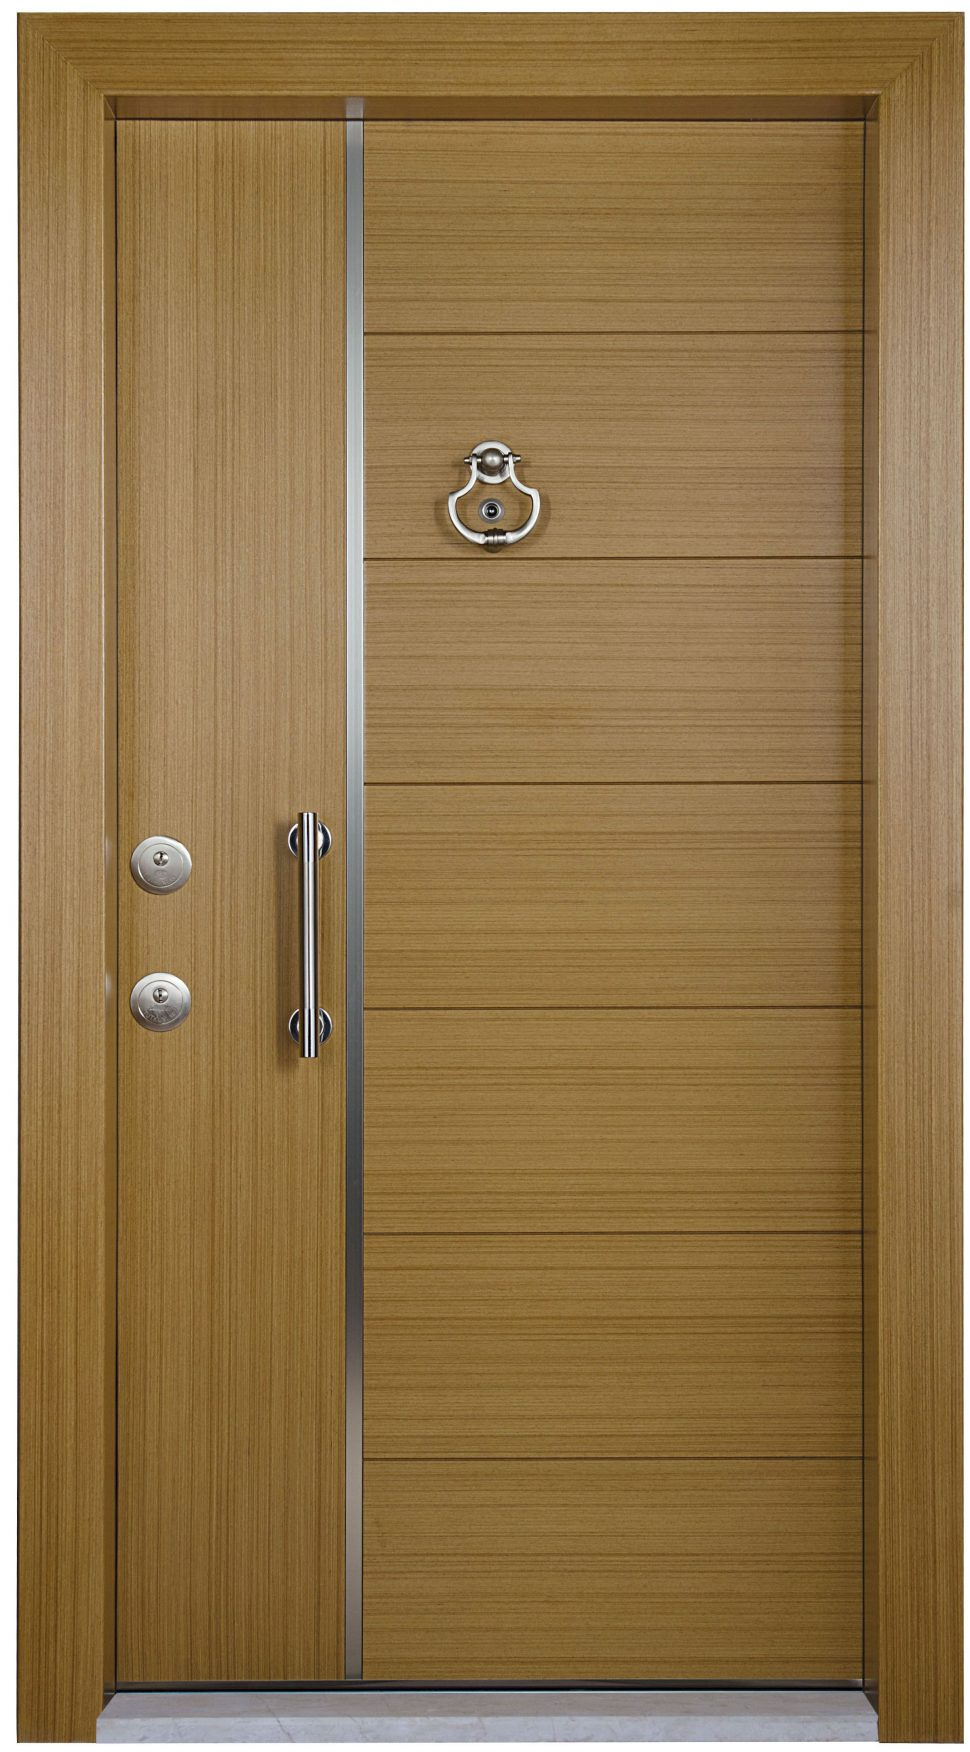 bedroom door design with closet ideas modern latest designs in wood wooden cupboard for bedrooms indian homes pin by ga¶ksu ersoyu on kapi girisi room 970x1752